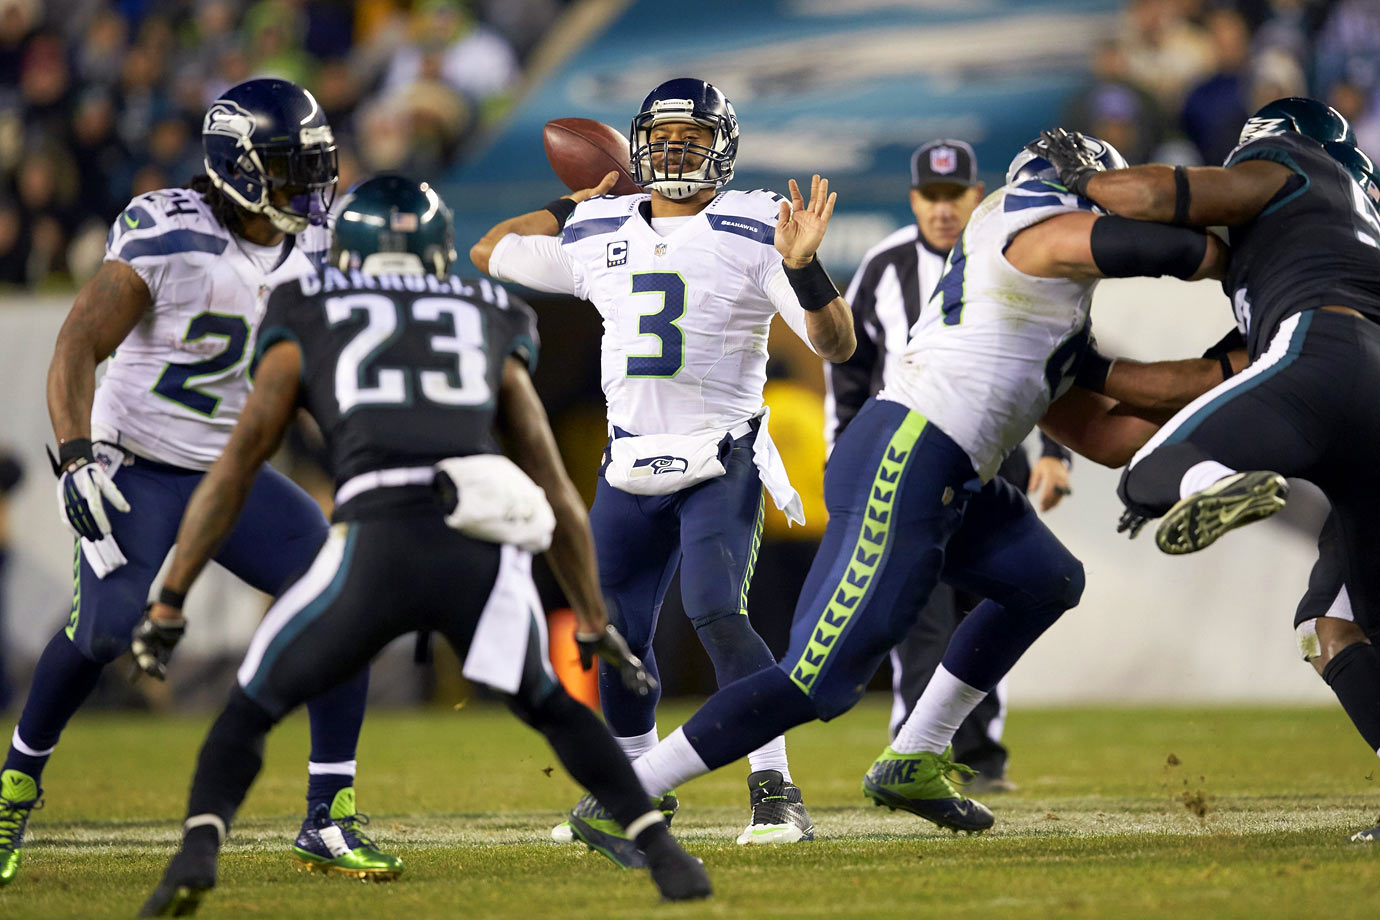 Wilson accounted for all of Seattle's touchdowns in their Week 14 win over the fast-paced Eagles. The Seahawks' QB threw for two scores and added another on the ground, while Philadelphia quarterback Mark Sanchez threw for only 96 yards in a 24-20 loss.